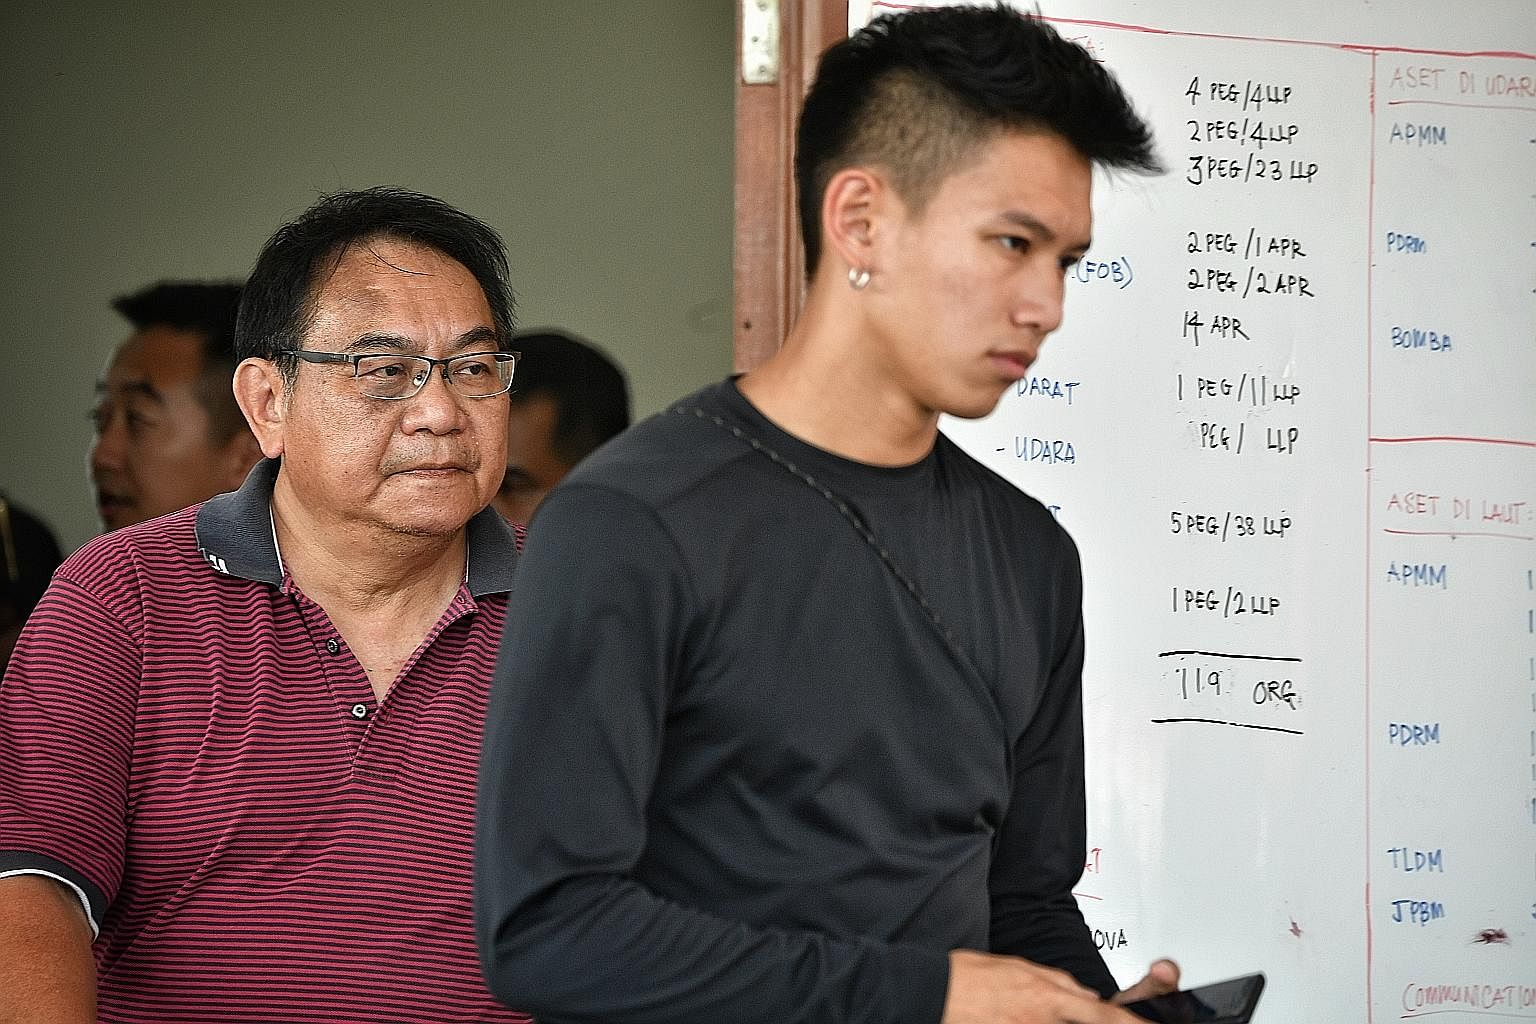 Mr Peng Mun Kit, husband of missing kayaker Puah Geok Tin, and his younger son Louis after they were told by Malaysian officials in Mersing yesterday afternoon that an unidentified body - believed to be that of Madam Puah - had been found in the wate